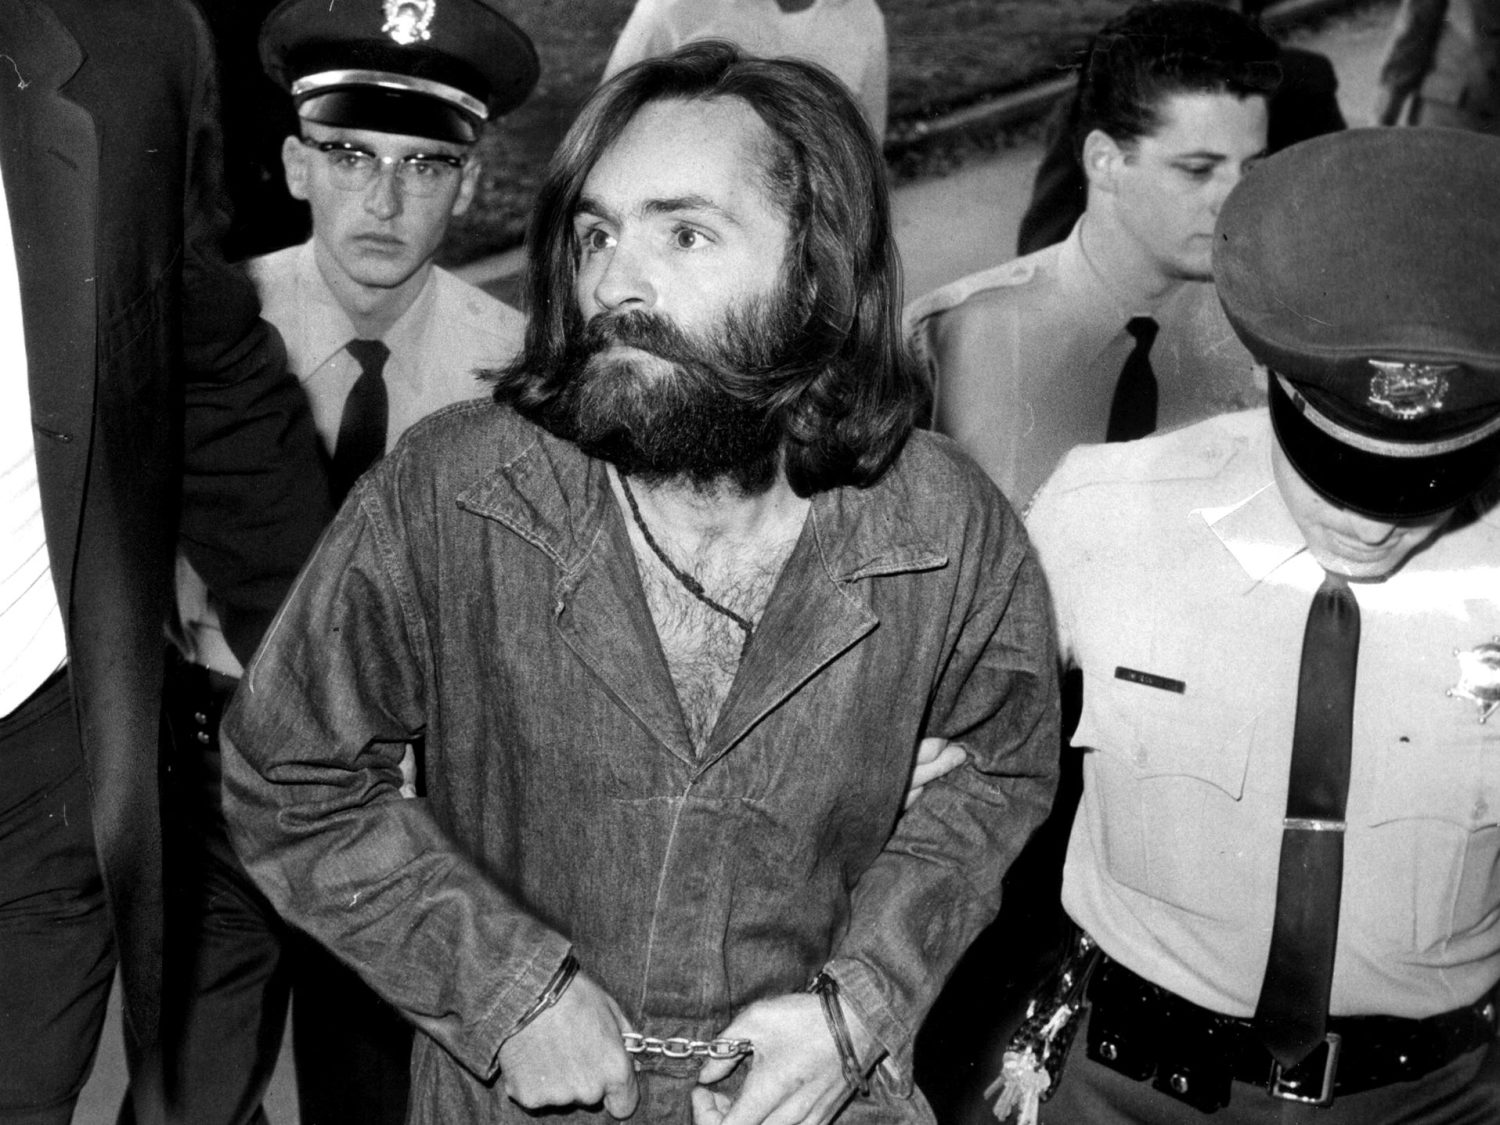 Charles Manson Jr. Couldn't Escape His Father's Crimes, So He Shot Himself